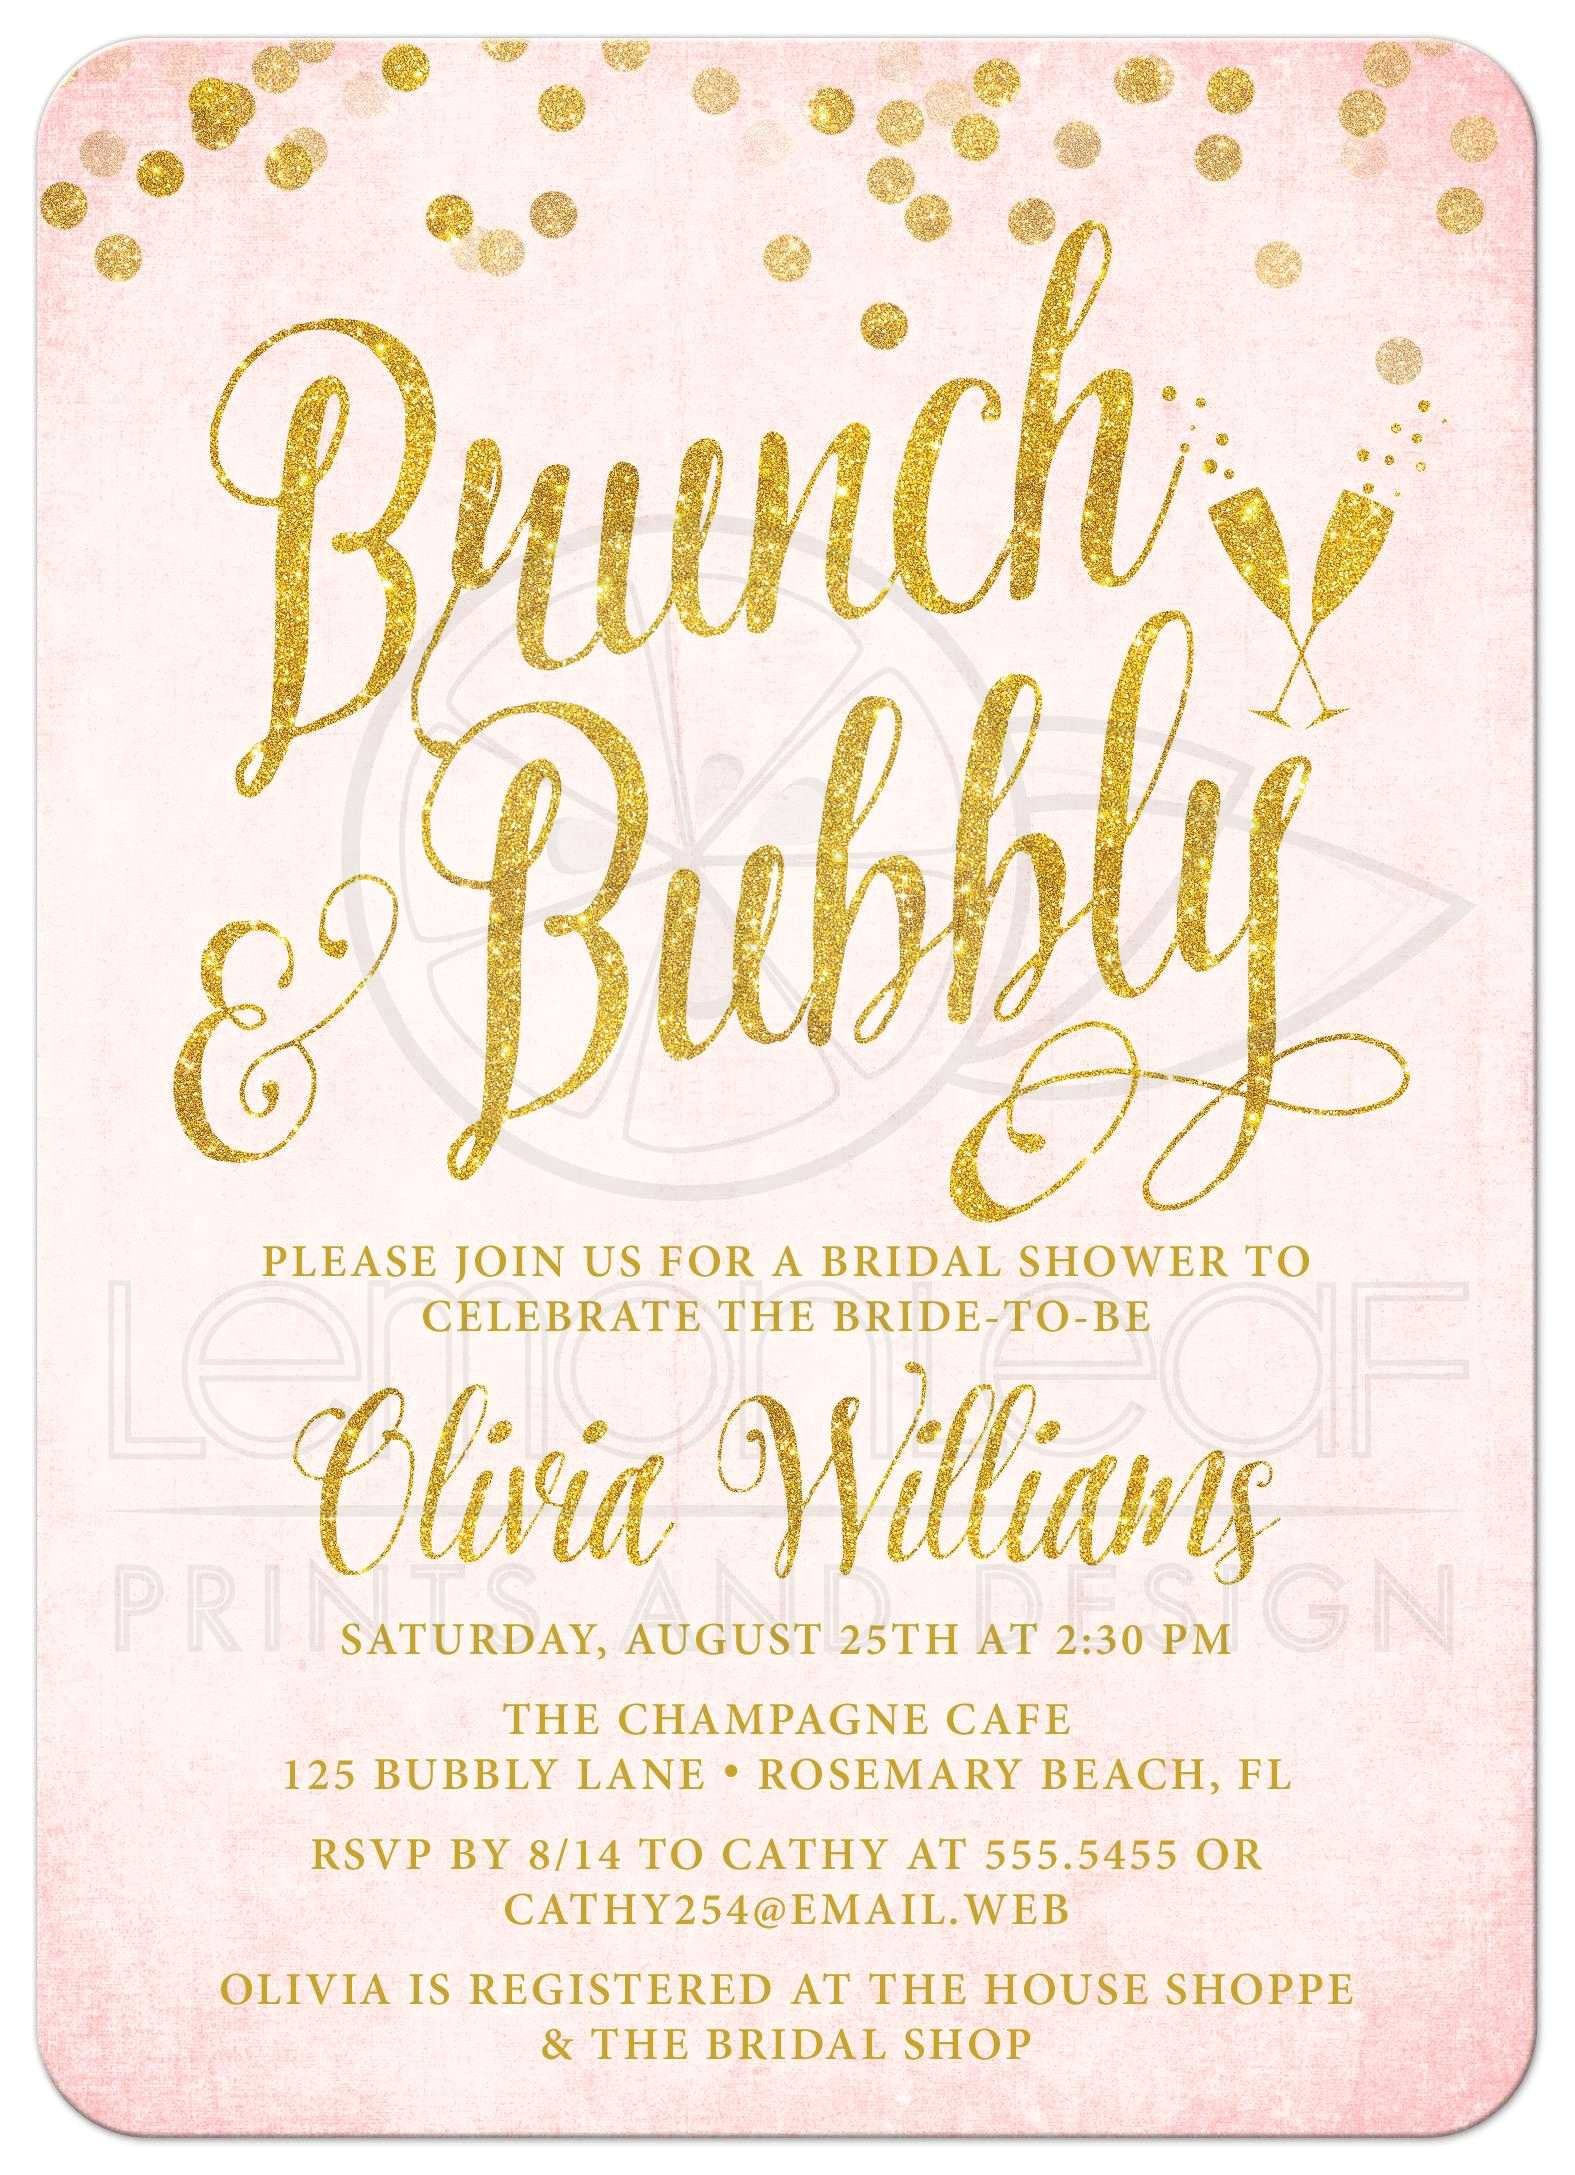 Bridal Shower Brunch Invitation Template Bridal Shower Invitations Bridal Brunch Shower